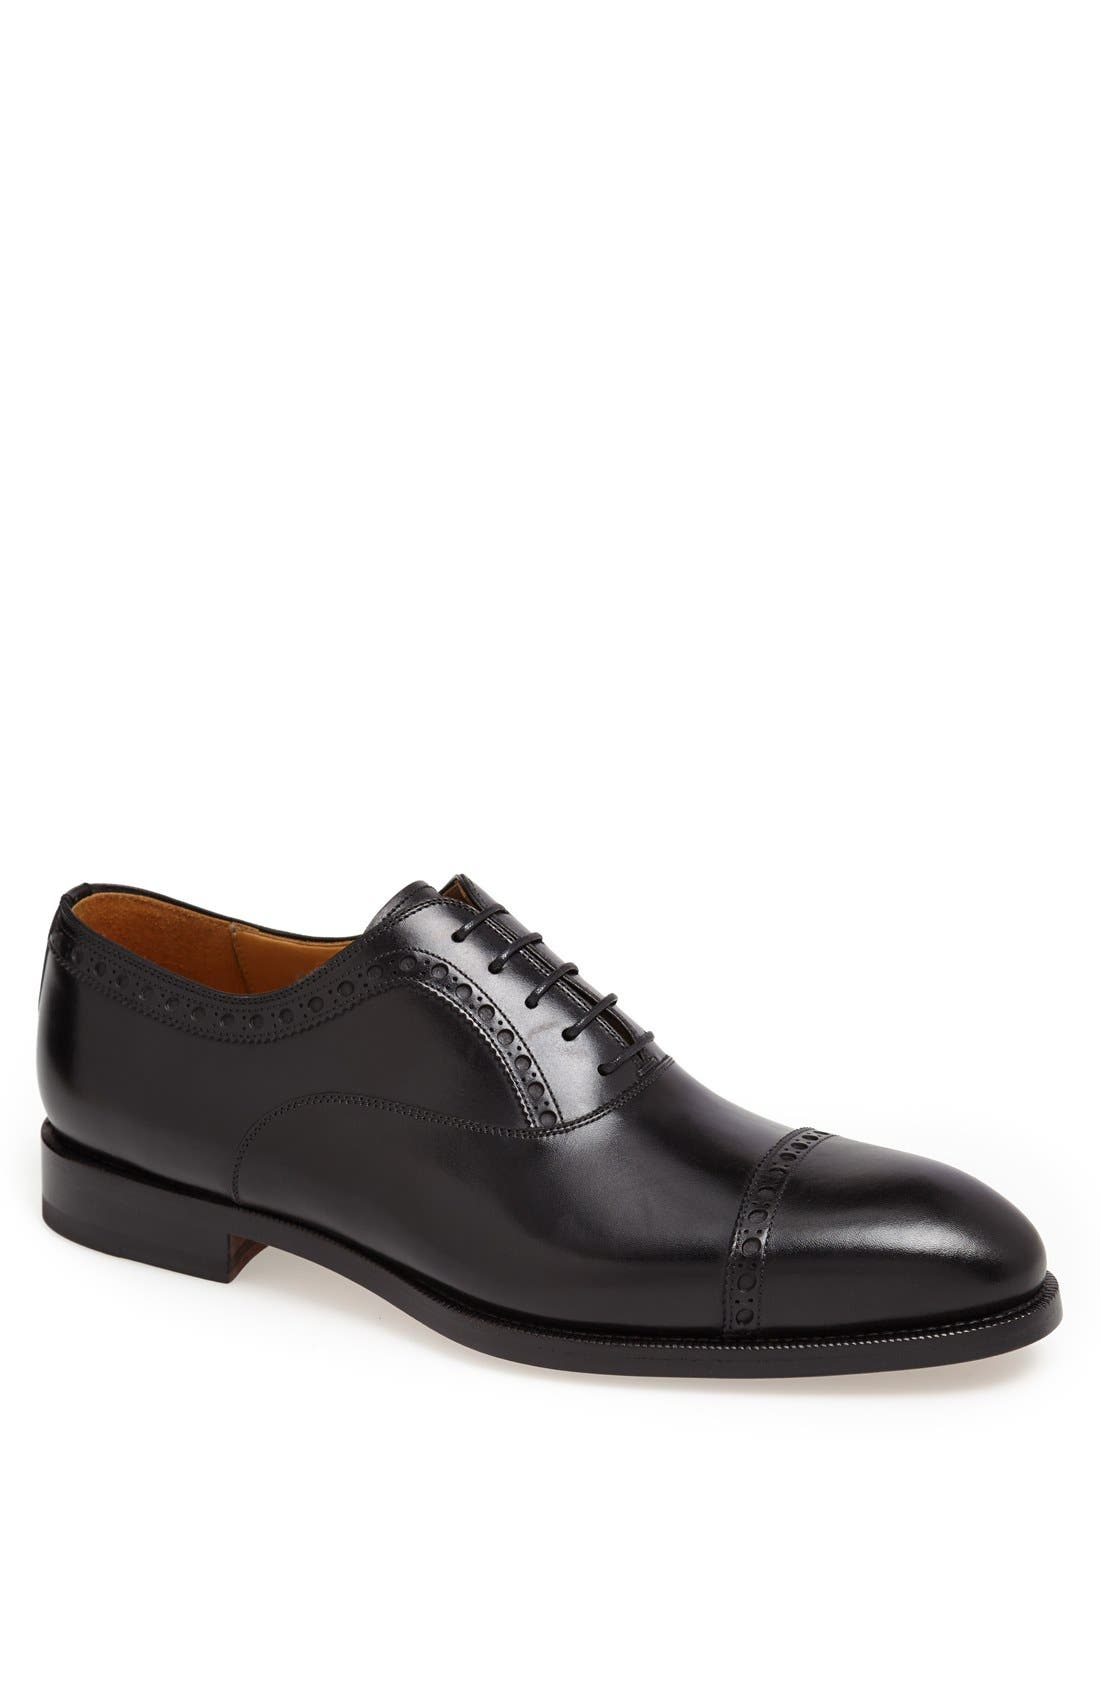 Alternate Image 1 Selected - Magnanni 'Luca' Cap Toe Oxford (Men) (Online Only)